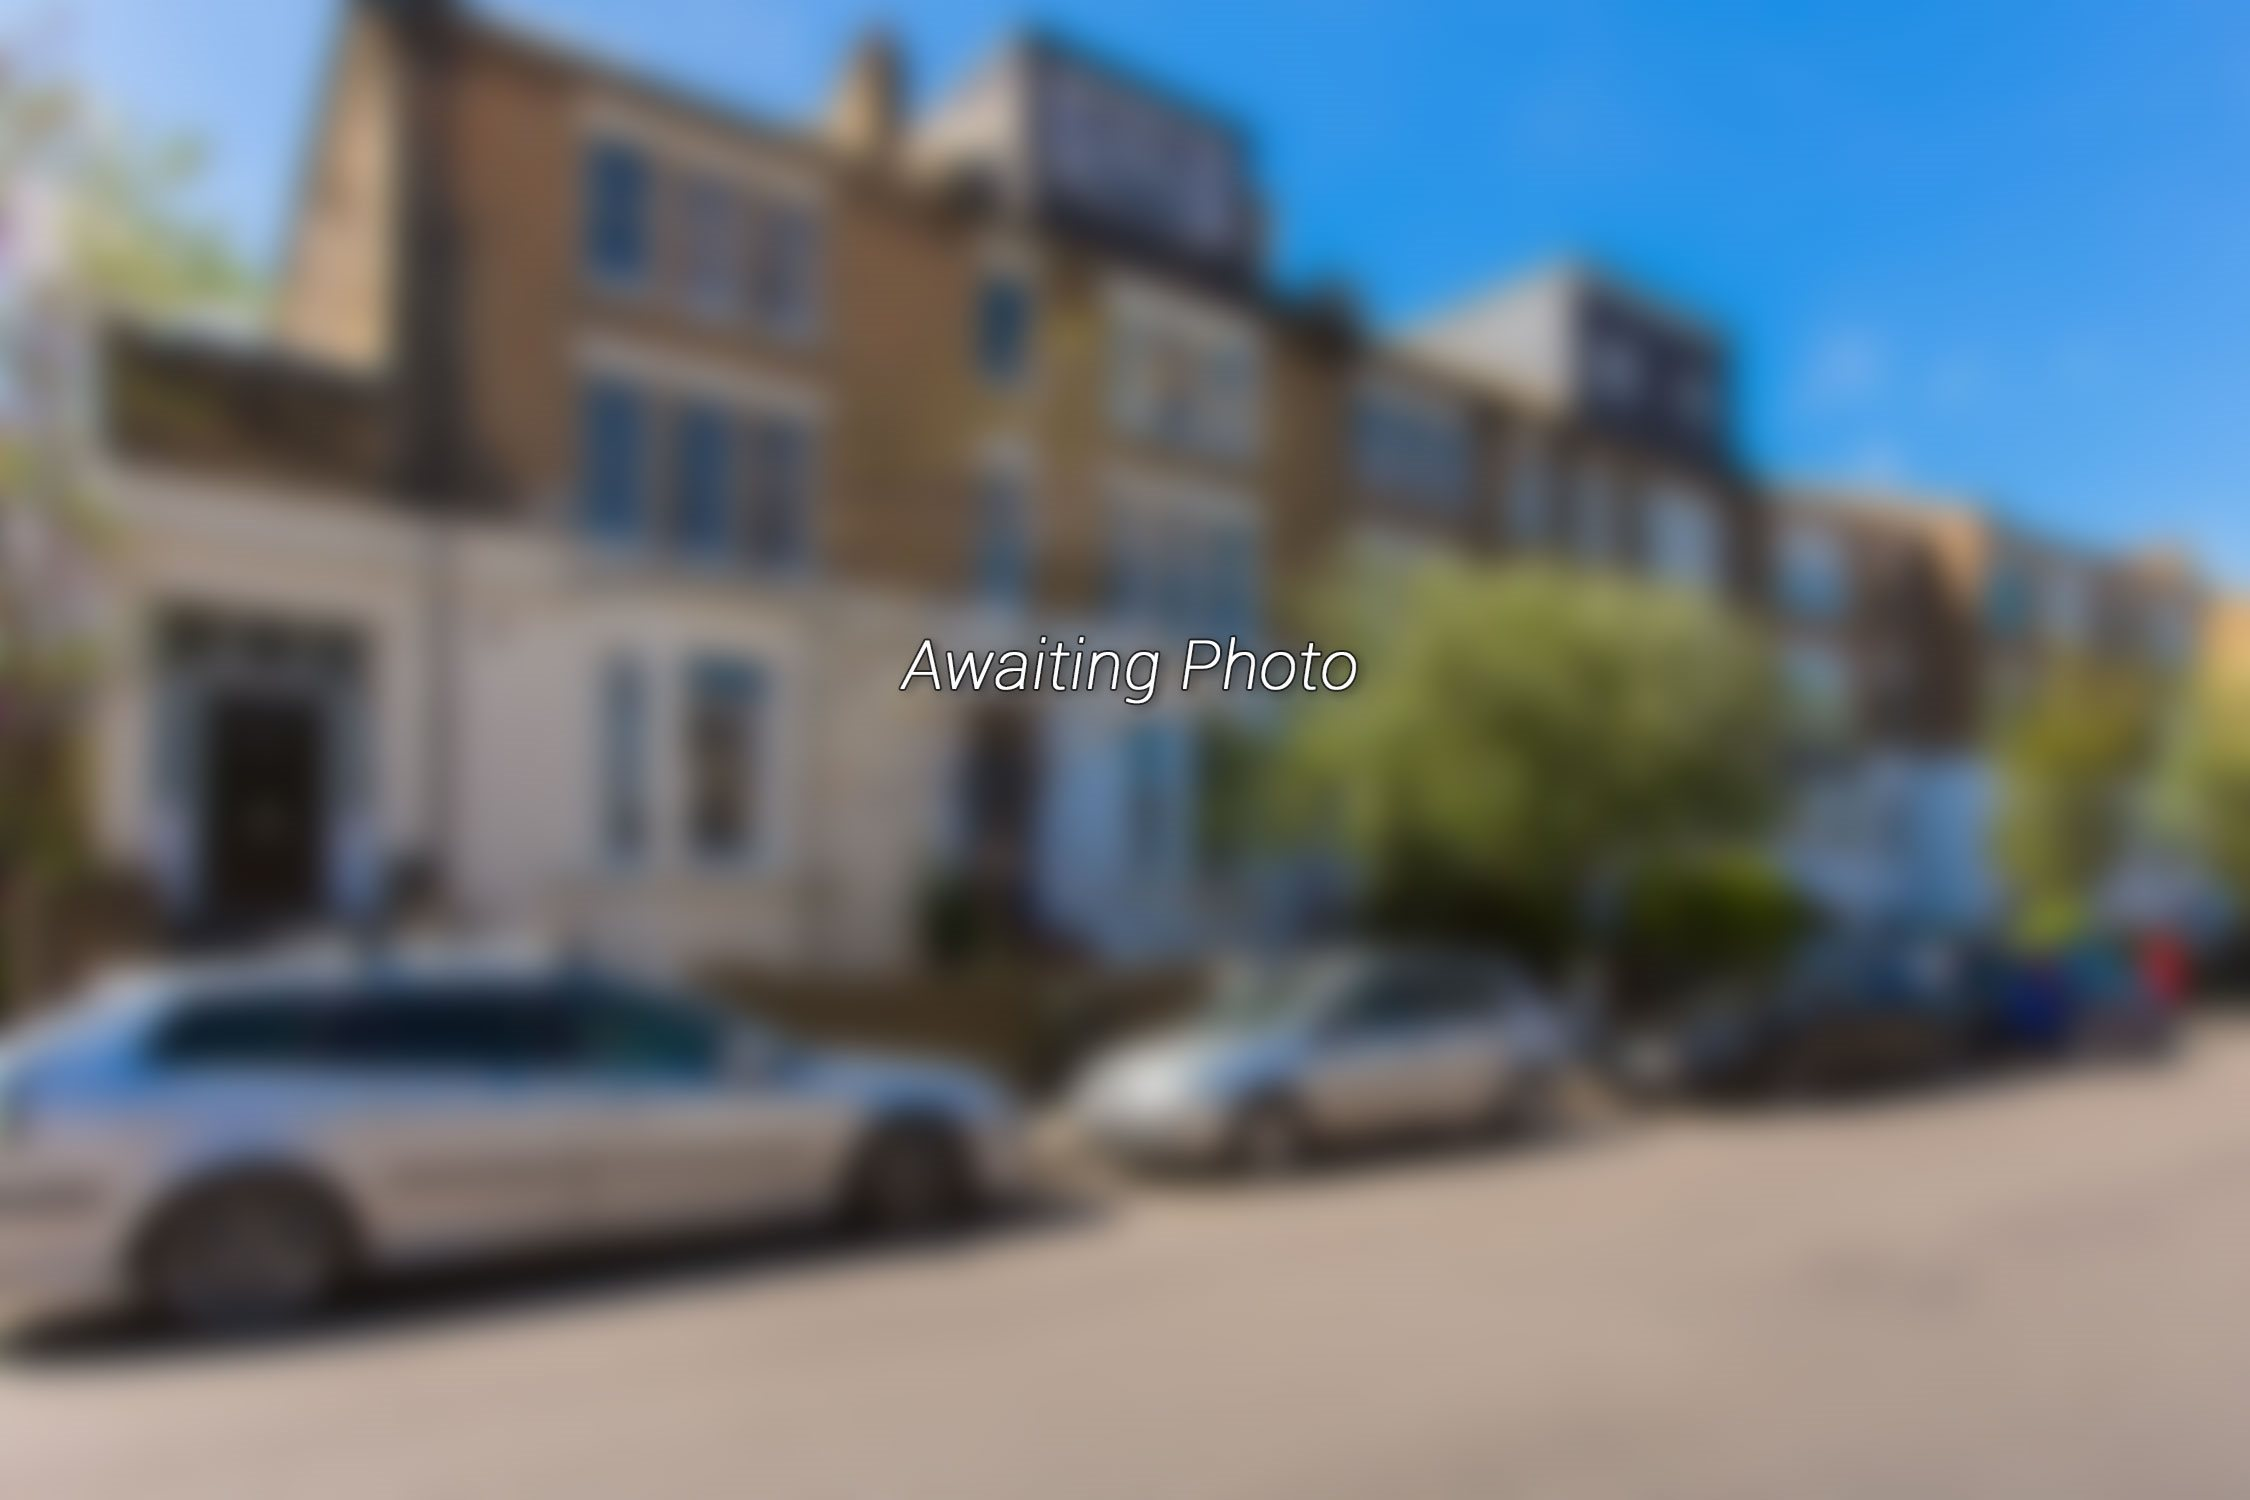 1 bedroom flat to rent in wandsworth 28 images 1 bedroom flat to rent in wandsworth 28. Black Bedroom Furniture Sets. Home Design Ideas